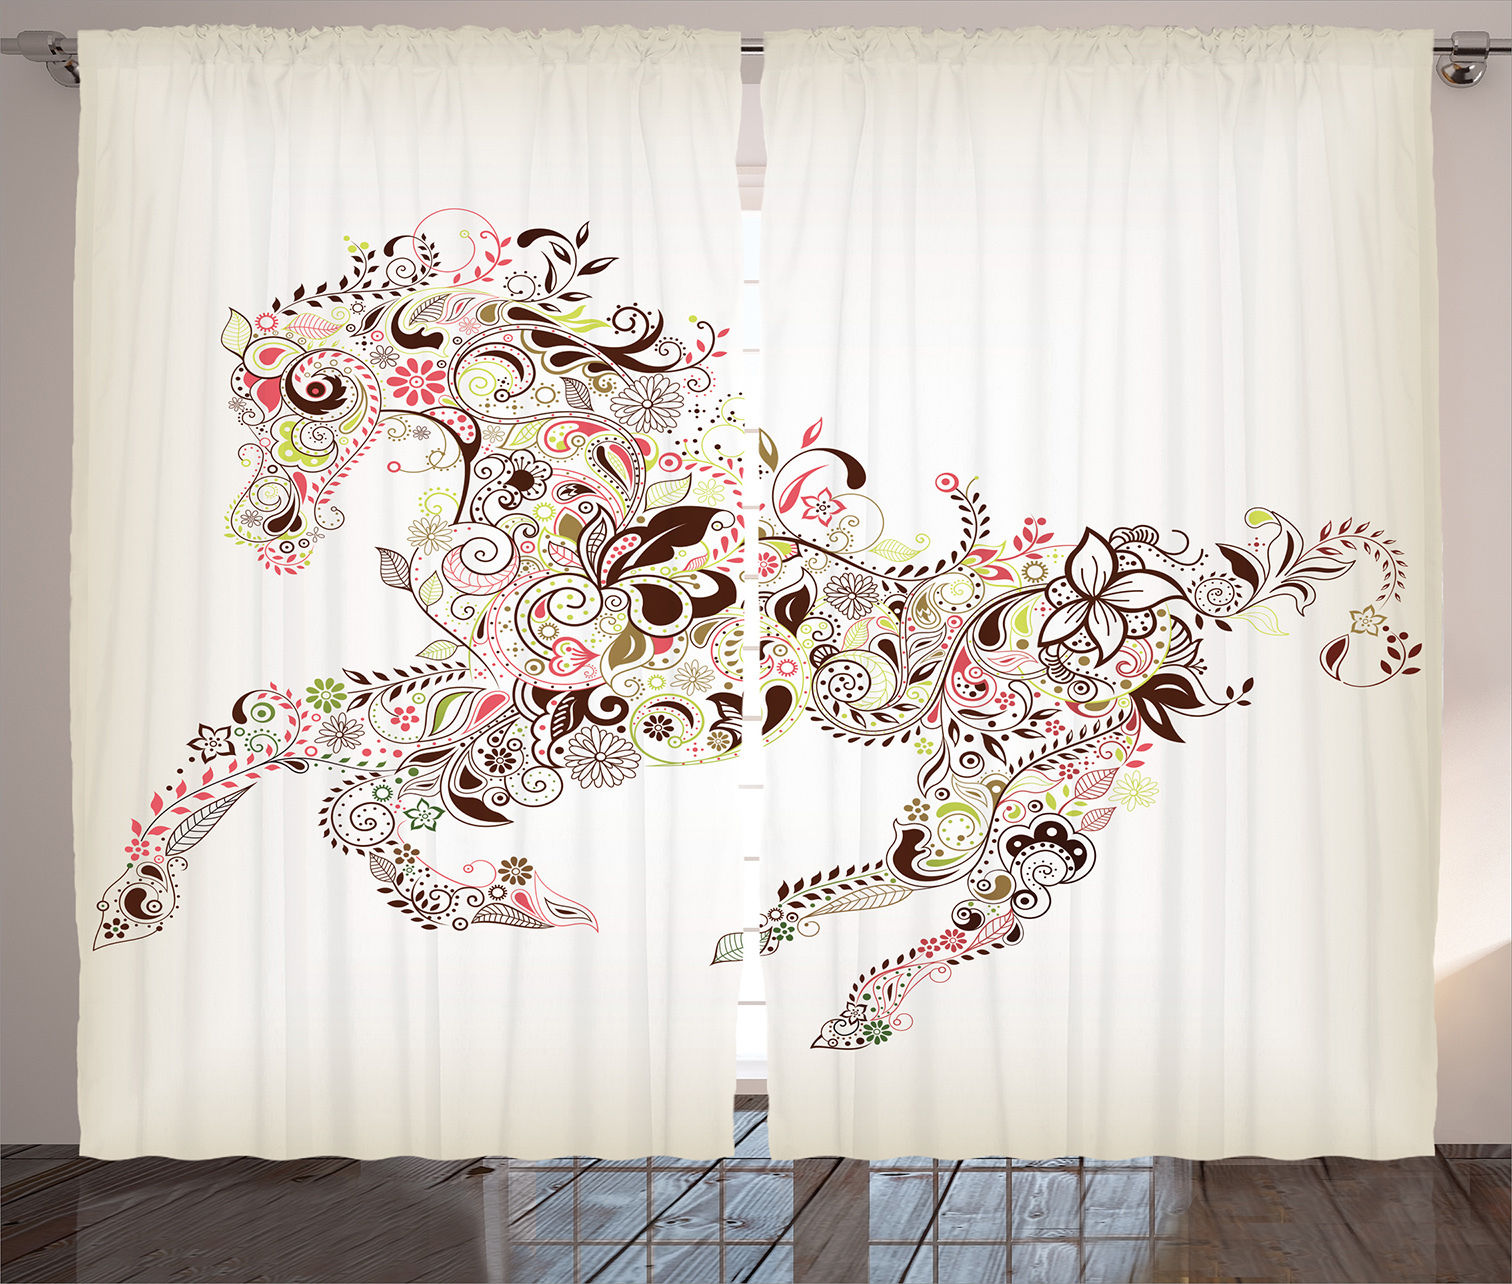 Curtains Bedroom Floral Horse Spring White Art Decor 2